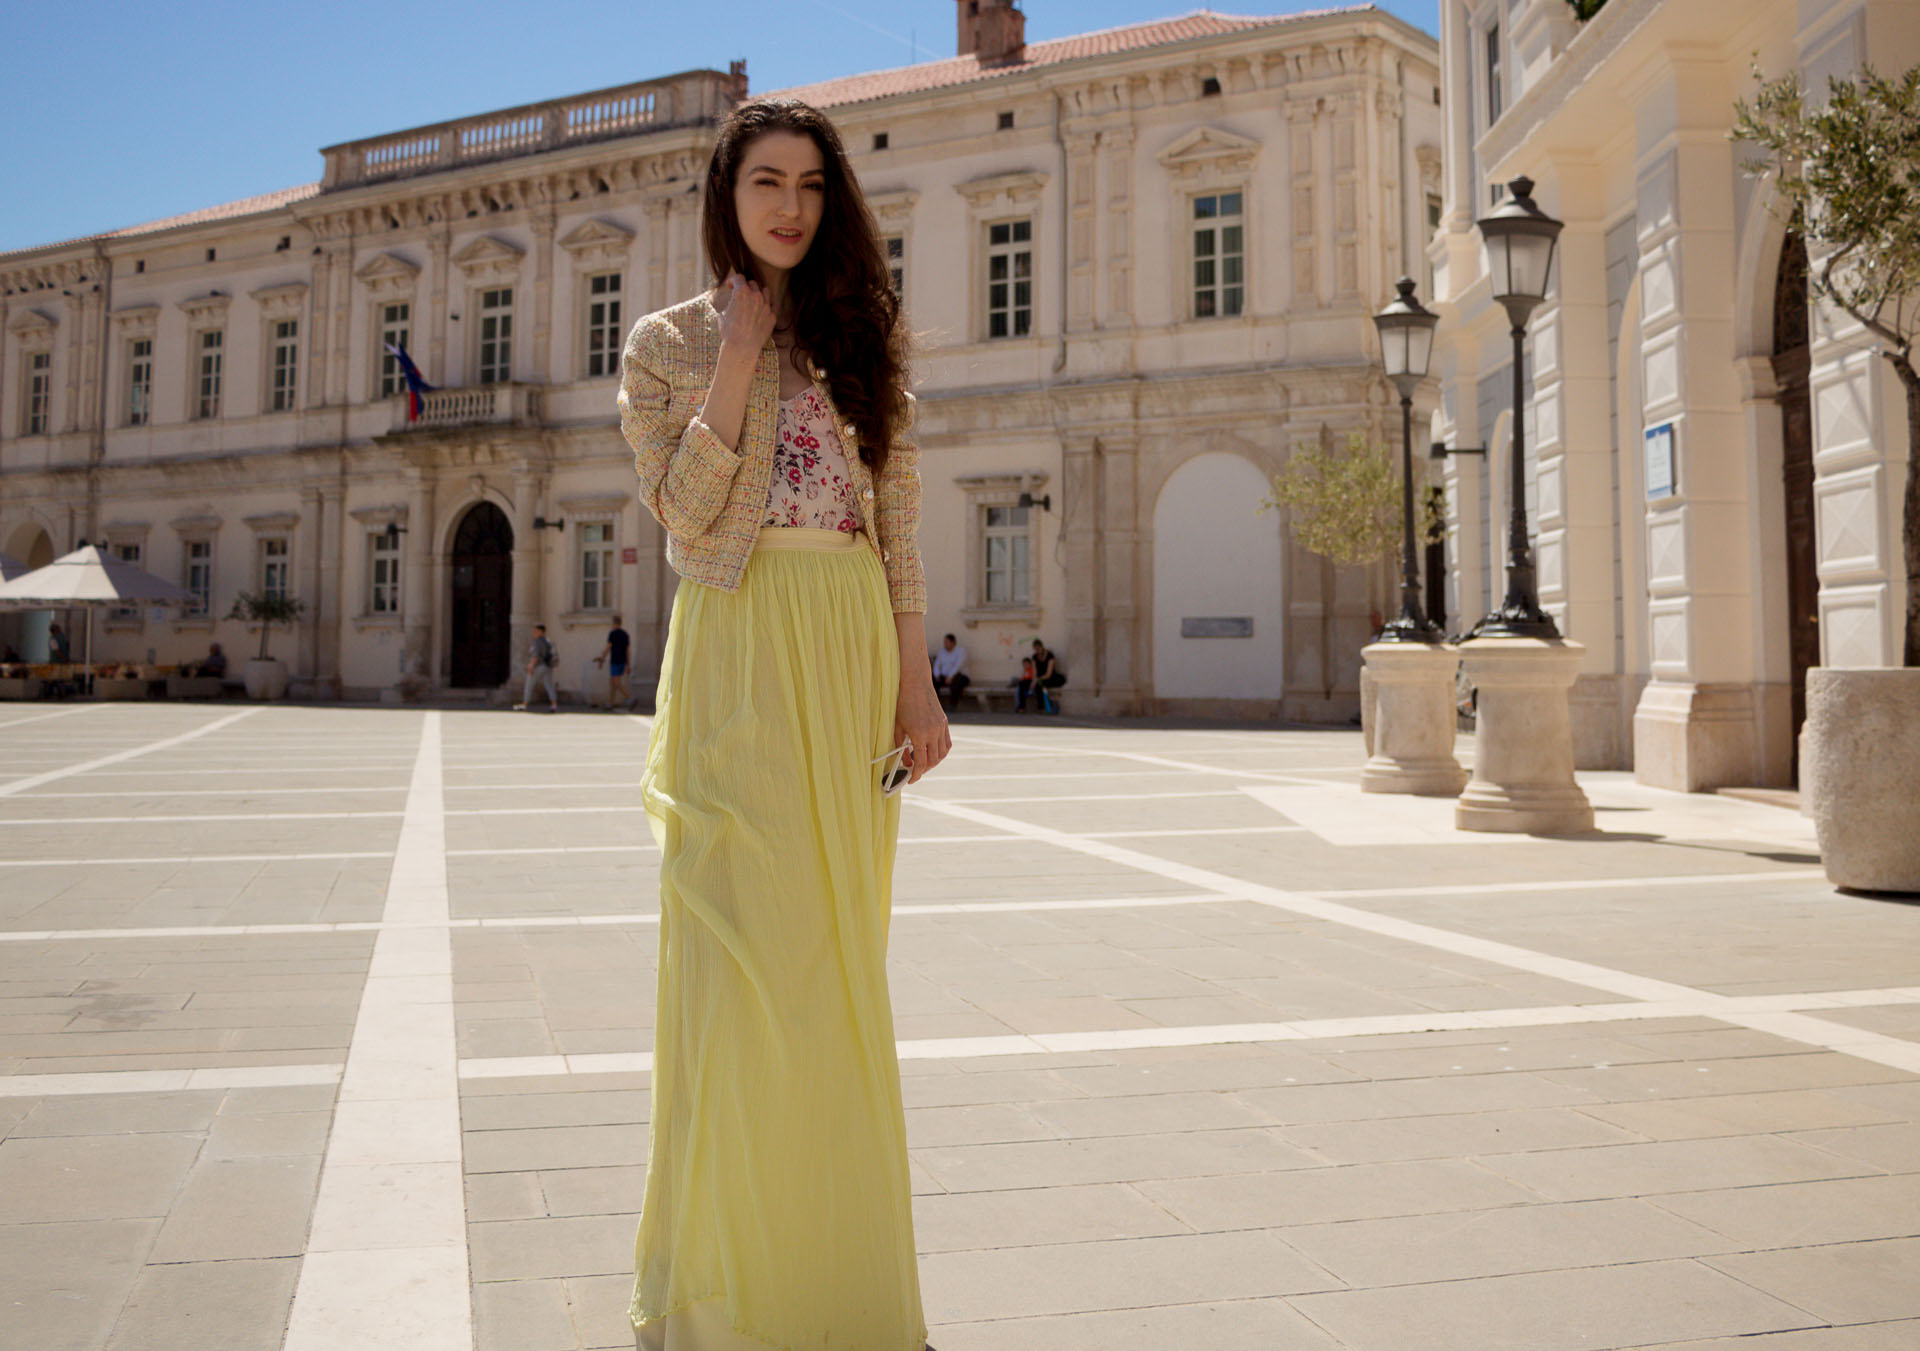 Veronika Lipar Fashion Blogger of Brunette from Wall Street wearing long yellow tulle skirt from Needle & Thread, short yellow tweed jacket from Storets, floral silk top, blush Gianvito Rossi plexi pumps, white shoulder bag, Le specs white cat eye sunglasses walking at the square in Venice